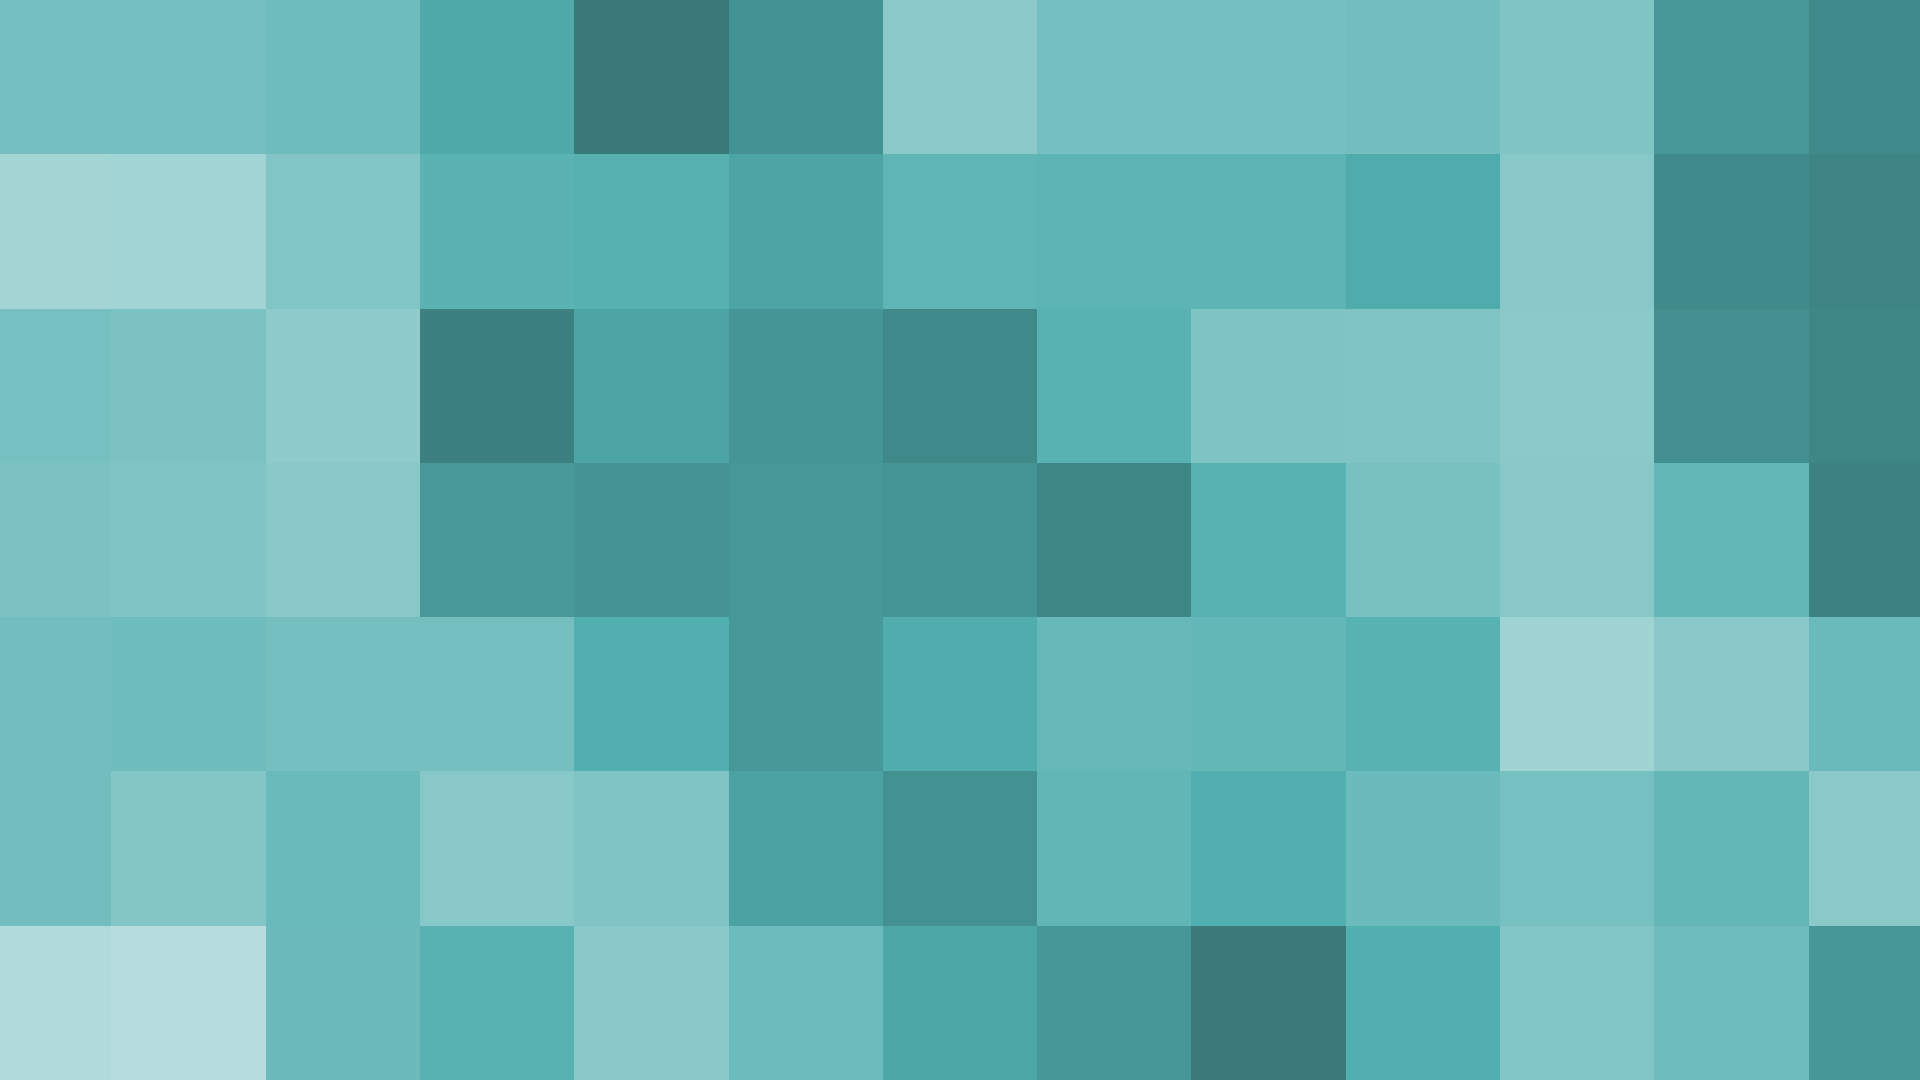 ... Teal Pixel Blocks by Jayro-Jones